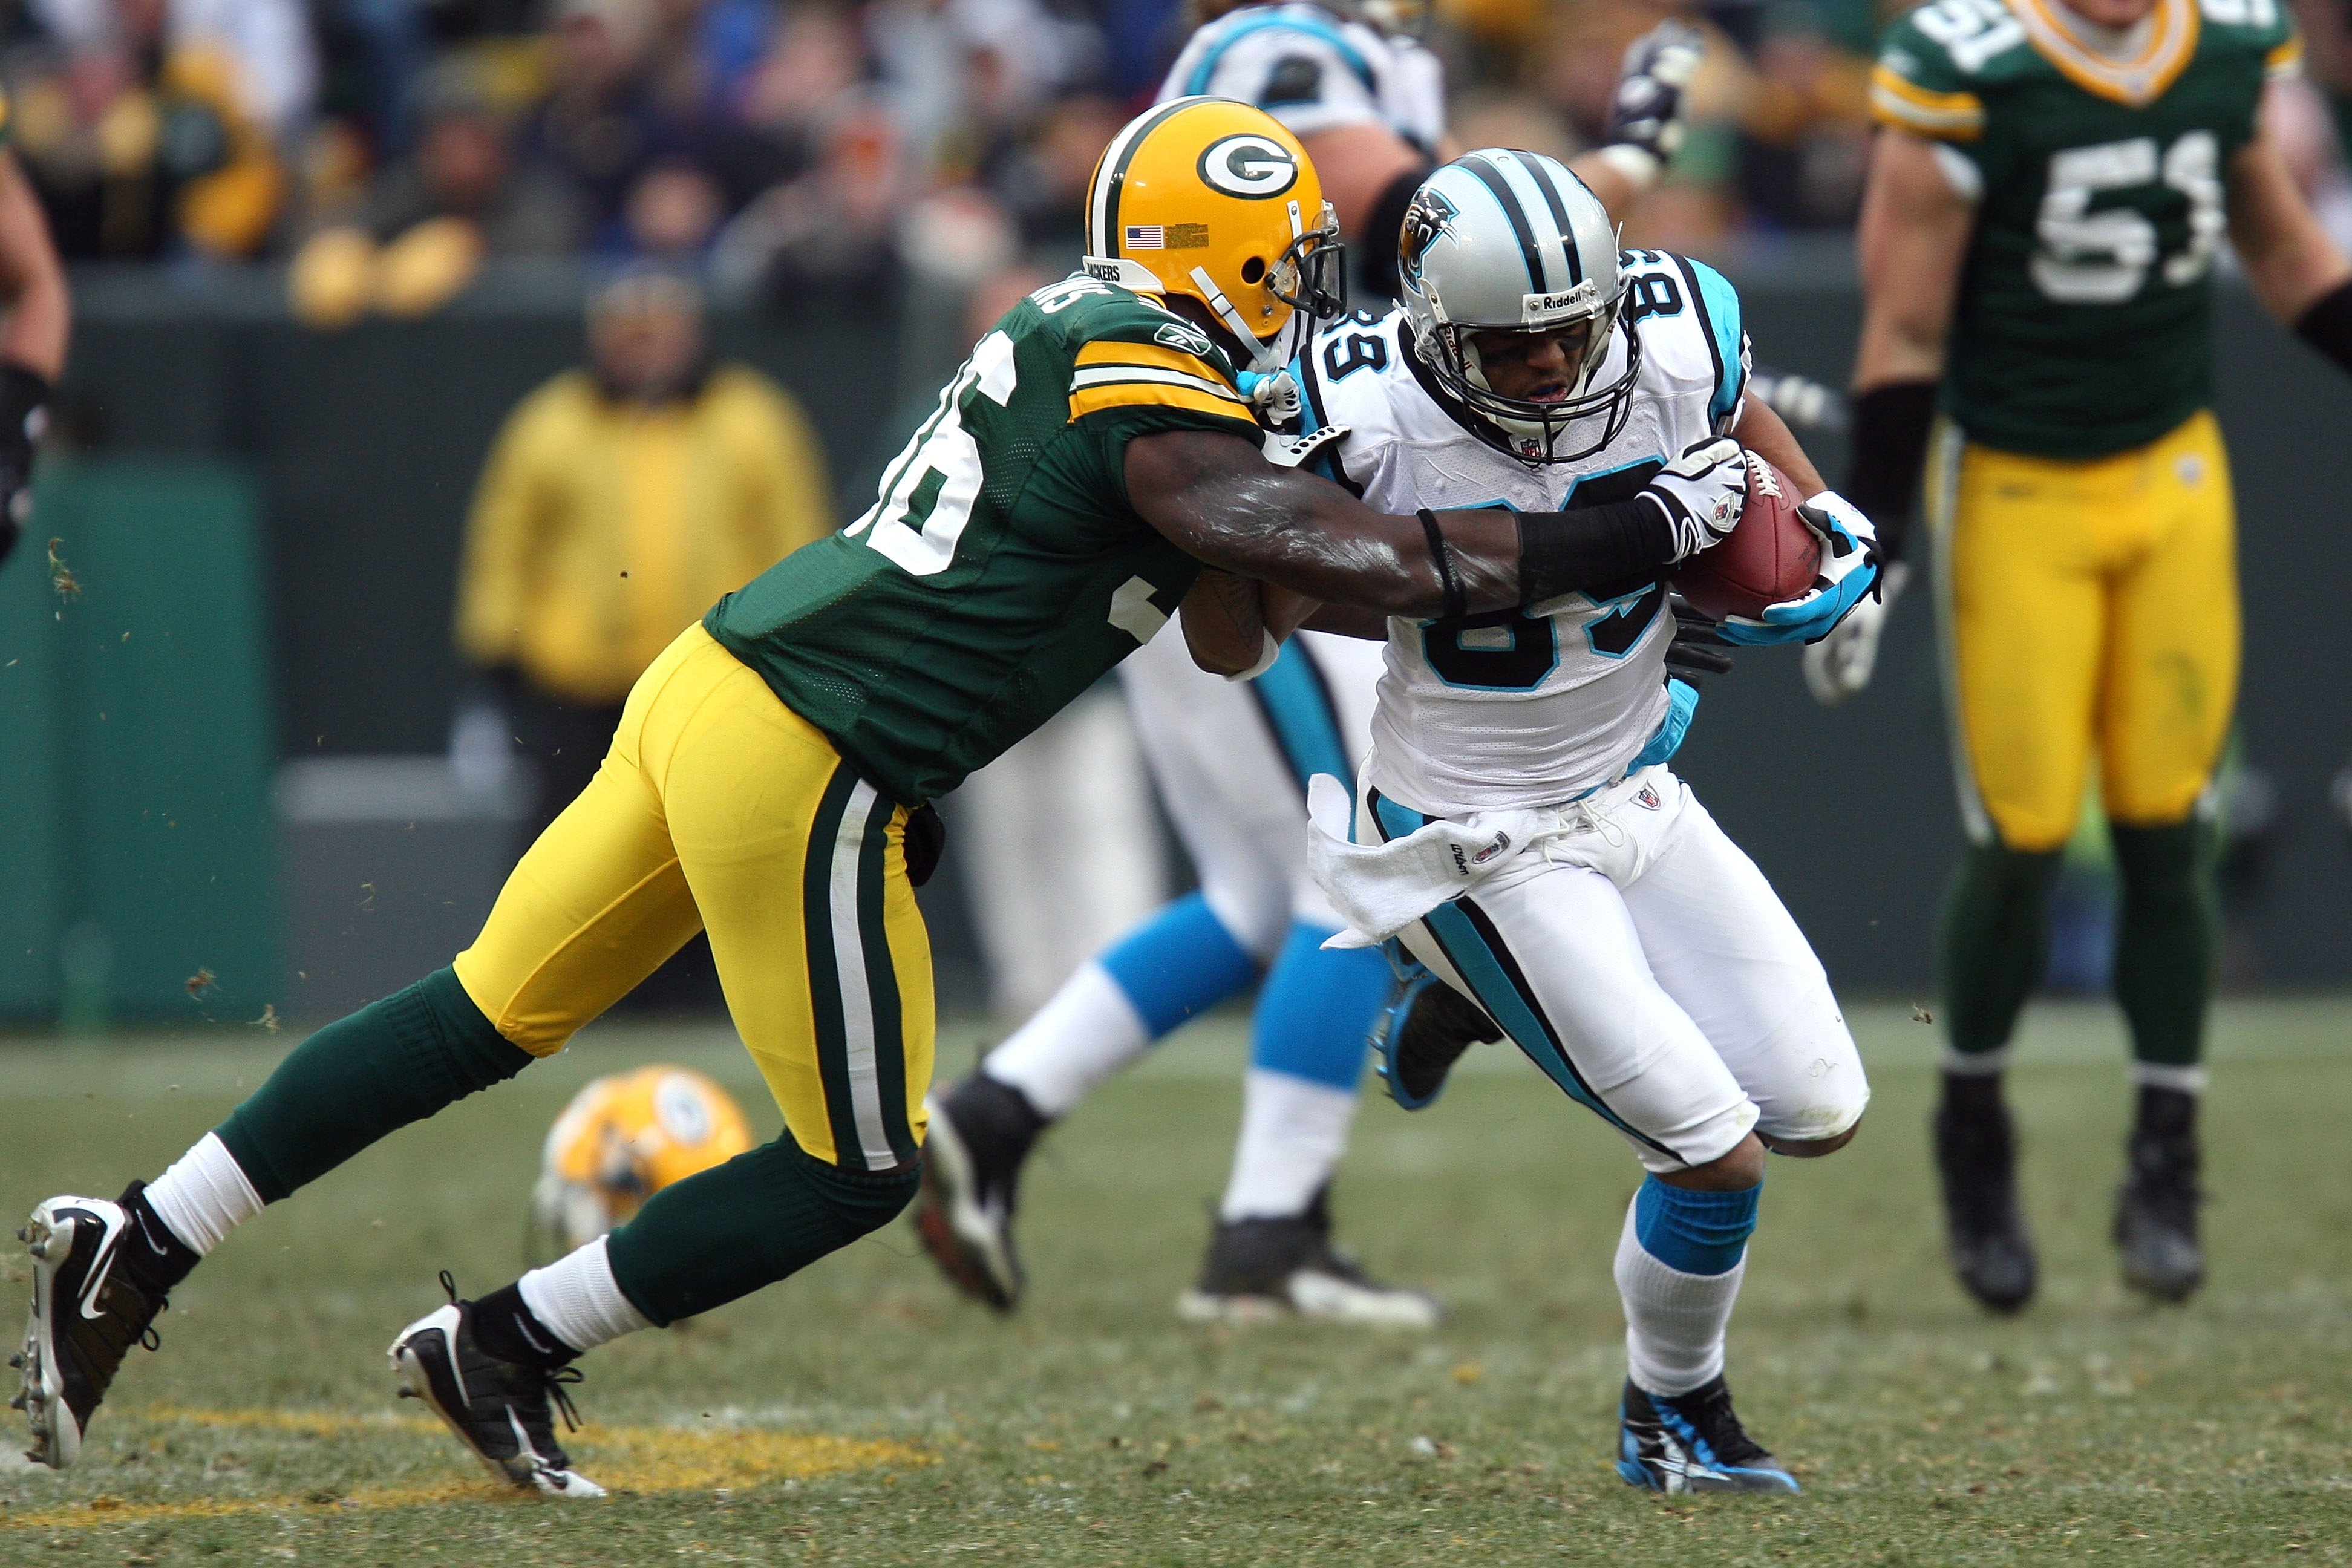 GREEN BAY, WI - NOVEMBER 30:  Steve Smith #89 of  the Carolina Panthers runs for yards after the catch against Nick Collins #36 of the Green Bay Packers at Lambeau Field on November 30, 2008 in Green Bay, Wisconsin. The Panthers won 35-31.  (Photo by Jona